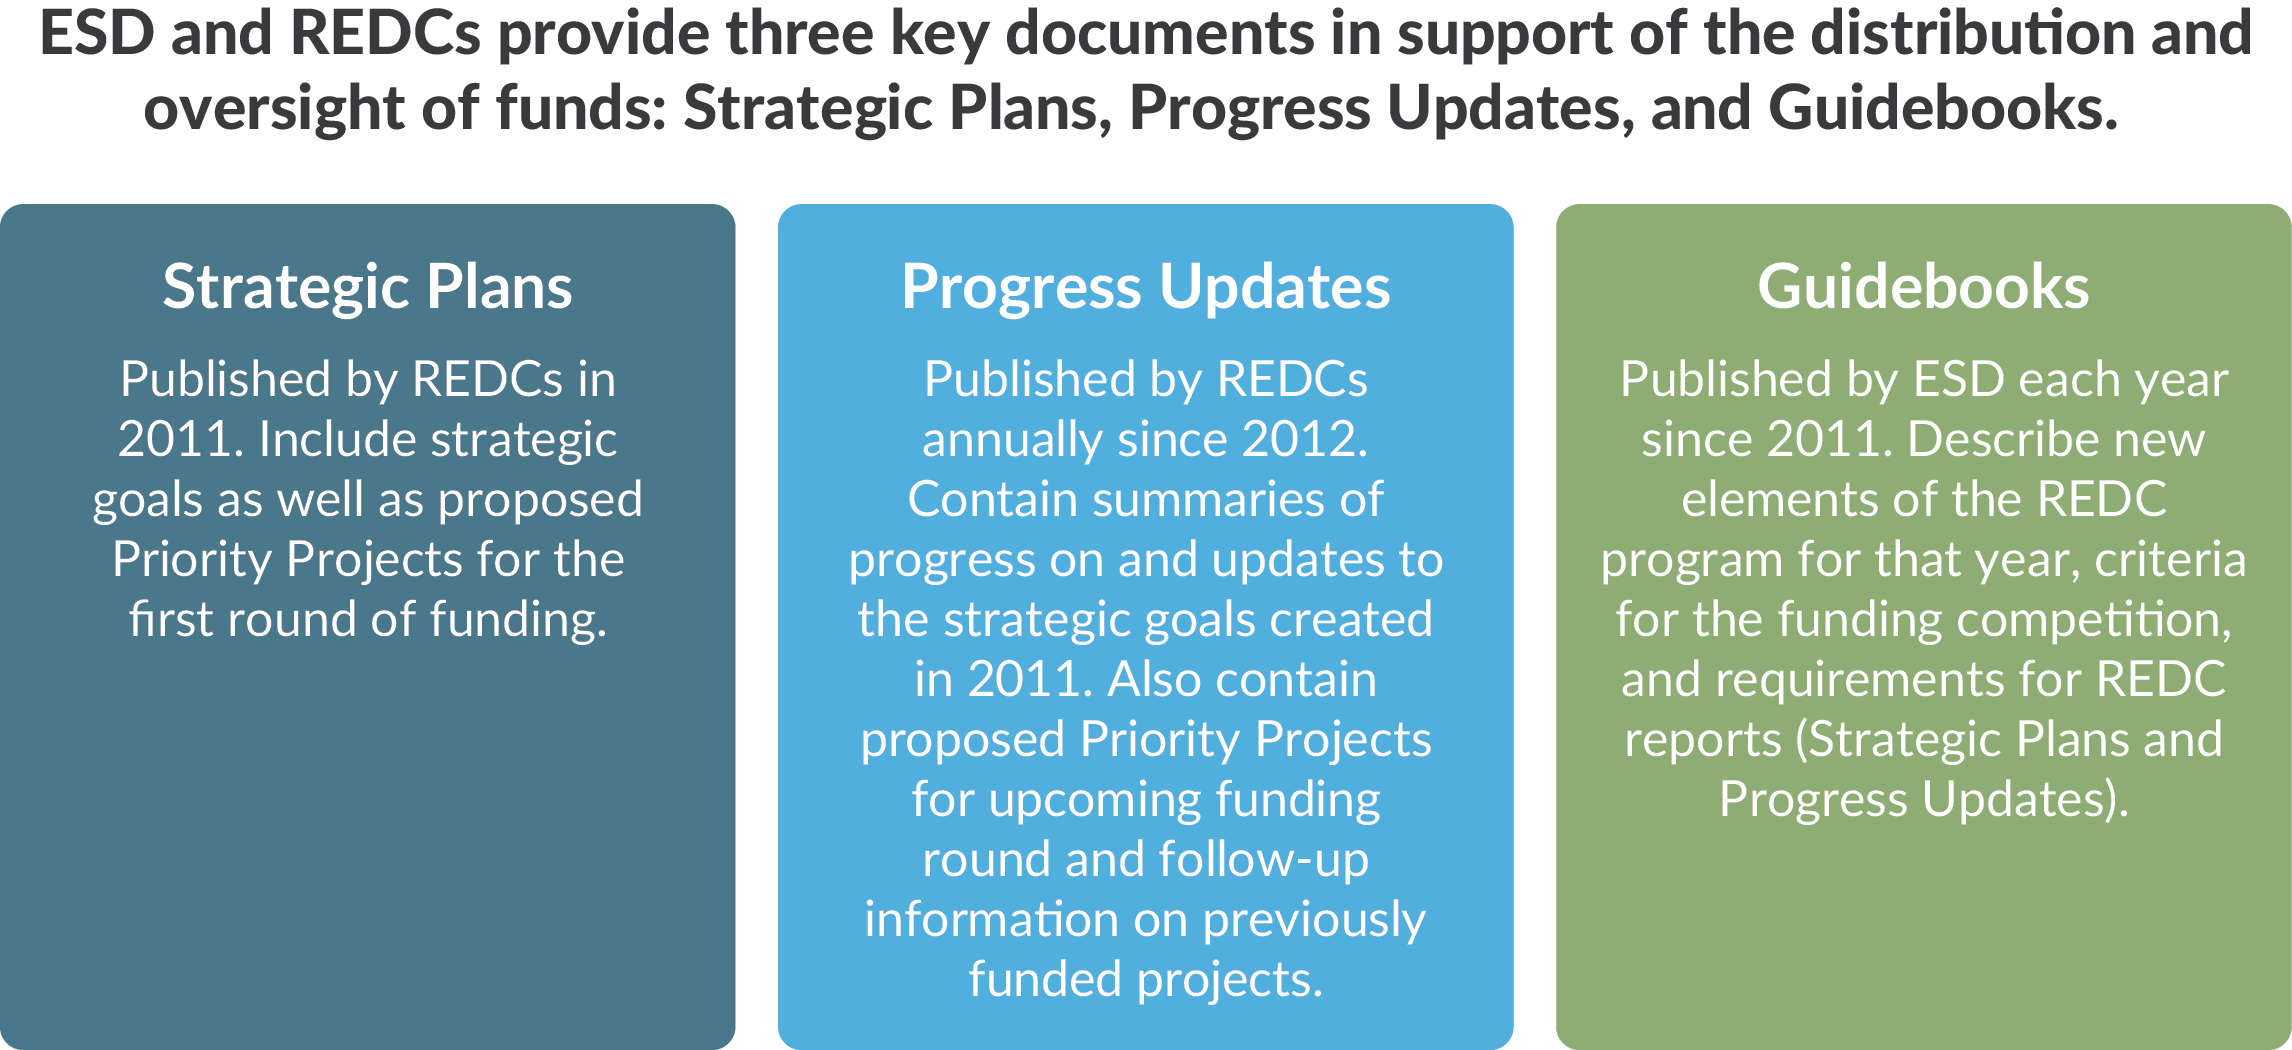 Key documents to support distribution and oversight of funds to New York State Regional Economic Development Councils, strategic plans, progress updates, guidebooks